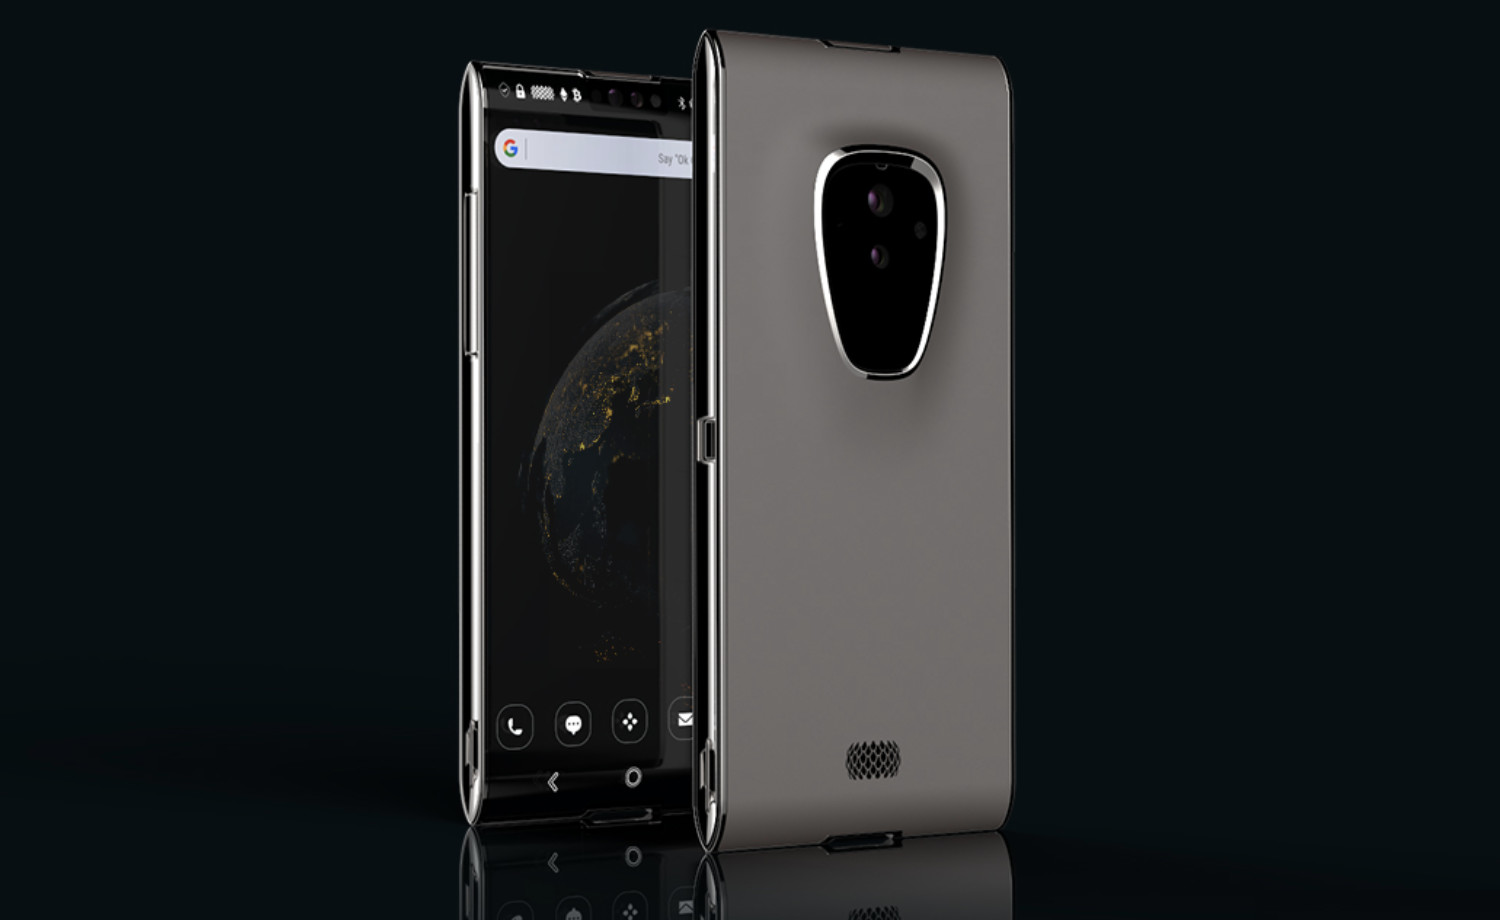 Here's the final design of the Finney blockchain phone